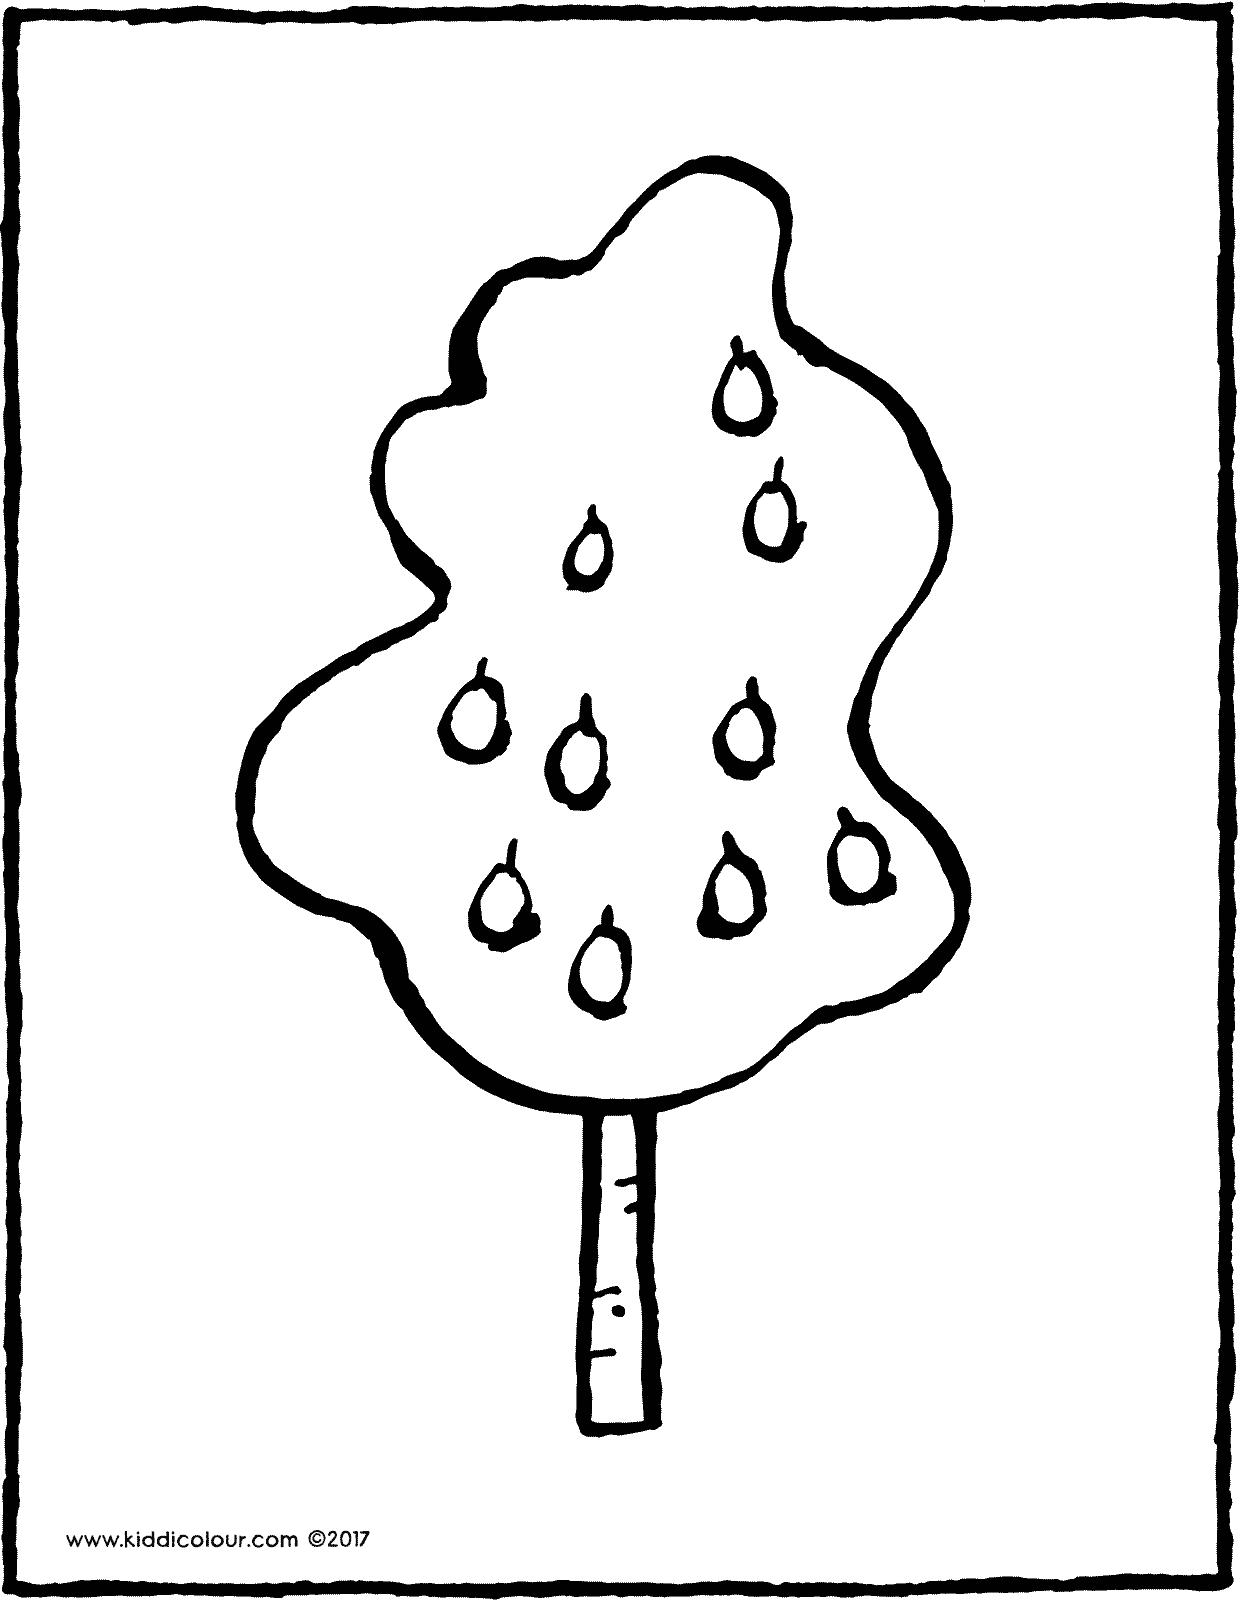 pear tree colouring page drawing picture 03V